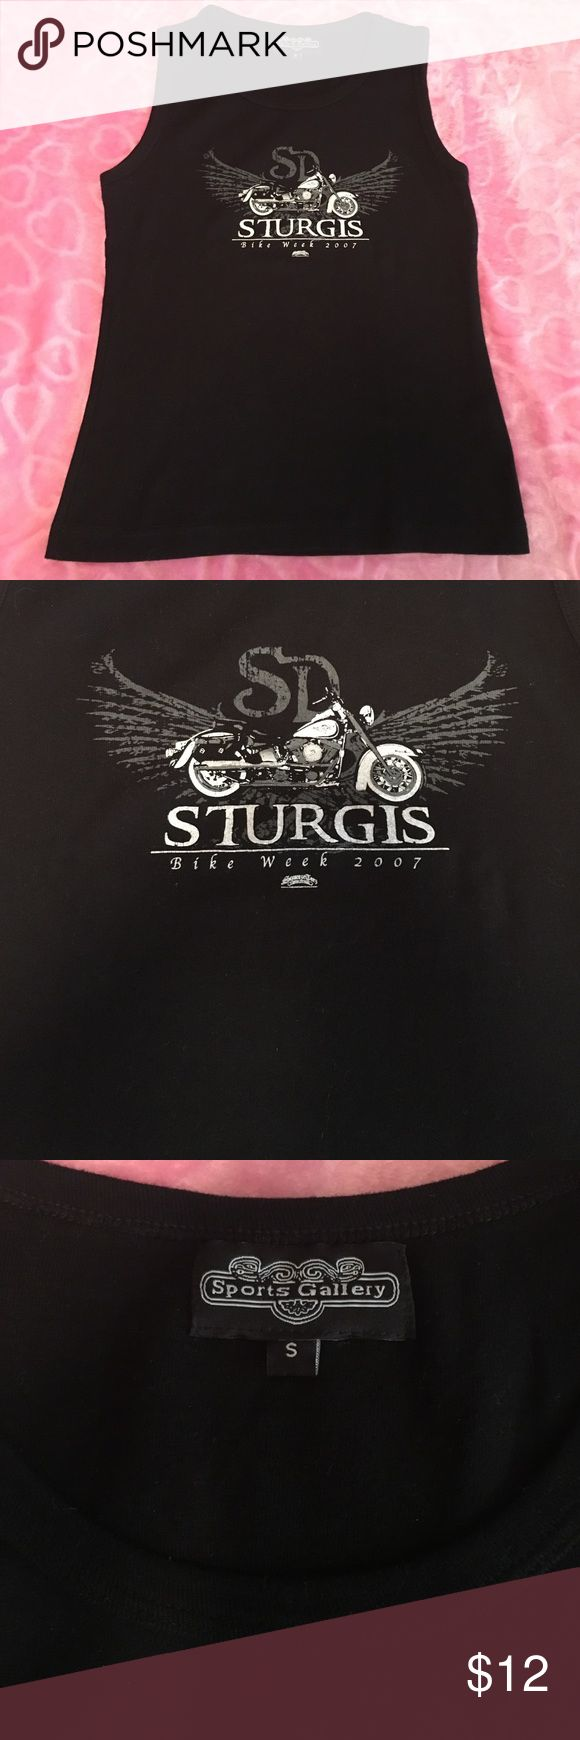 Sturgis Tank Sturgis Bike Week 2007 tank. Black with Sturgis Logo. Never worn. Perfect condition. Stretch Material. Size Small. 🎀 Sports Gallery  Tops Tank Tops